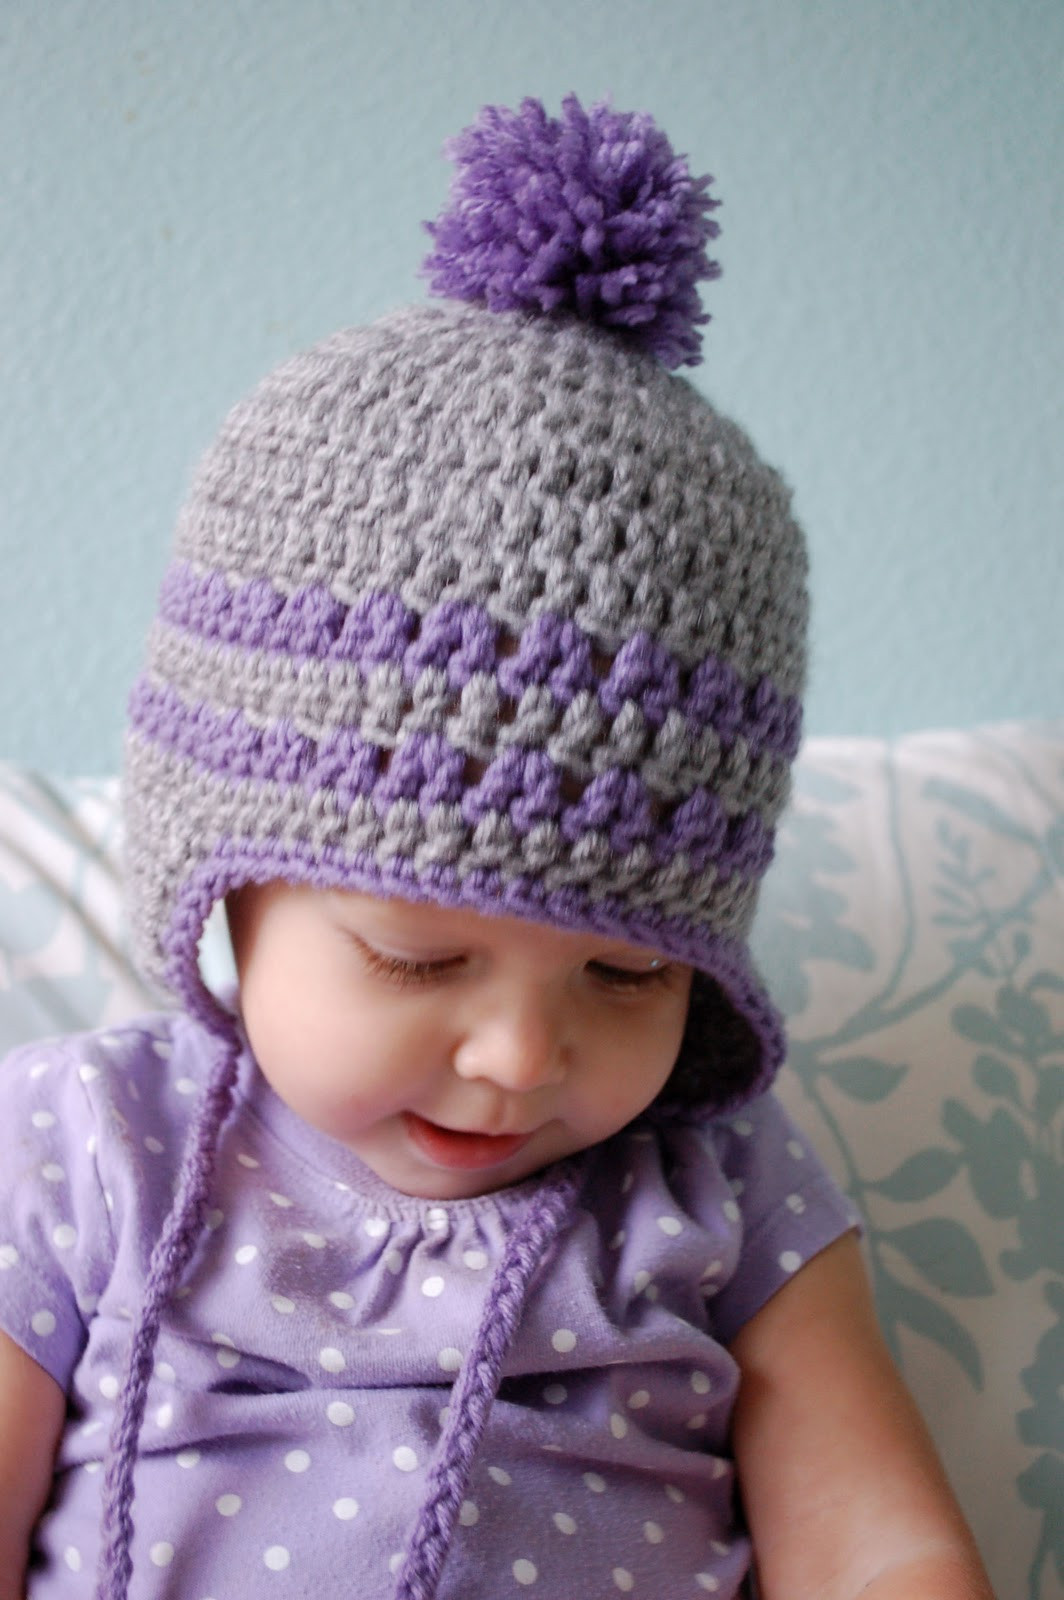 Awesome Alli Crafts Free Pattern Earflap Hat 9 12 Months Free Crochet Infant Hat Patterns Of Luxury Baby Hat Crochet Pattern Modern Homemakers Free Crochet Infant Hat Patterns